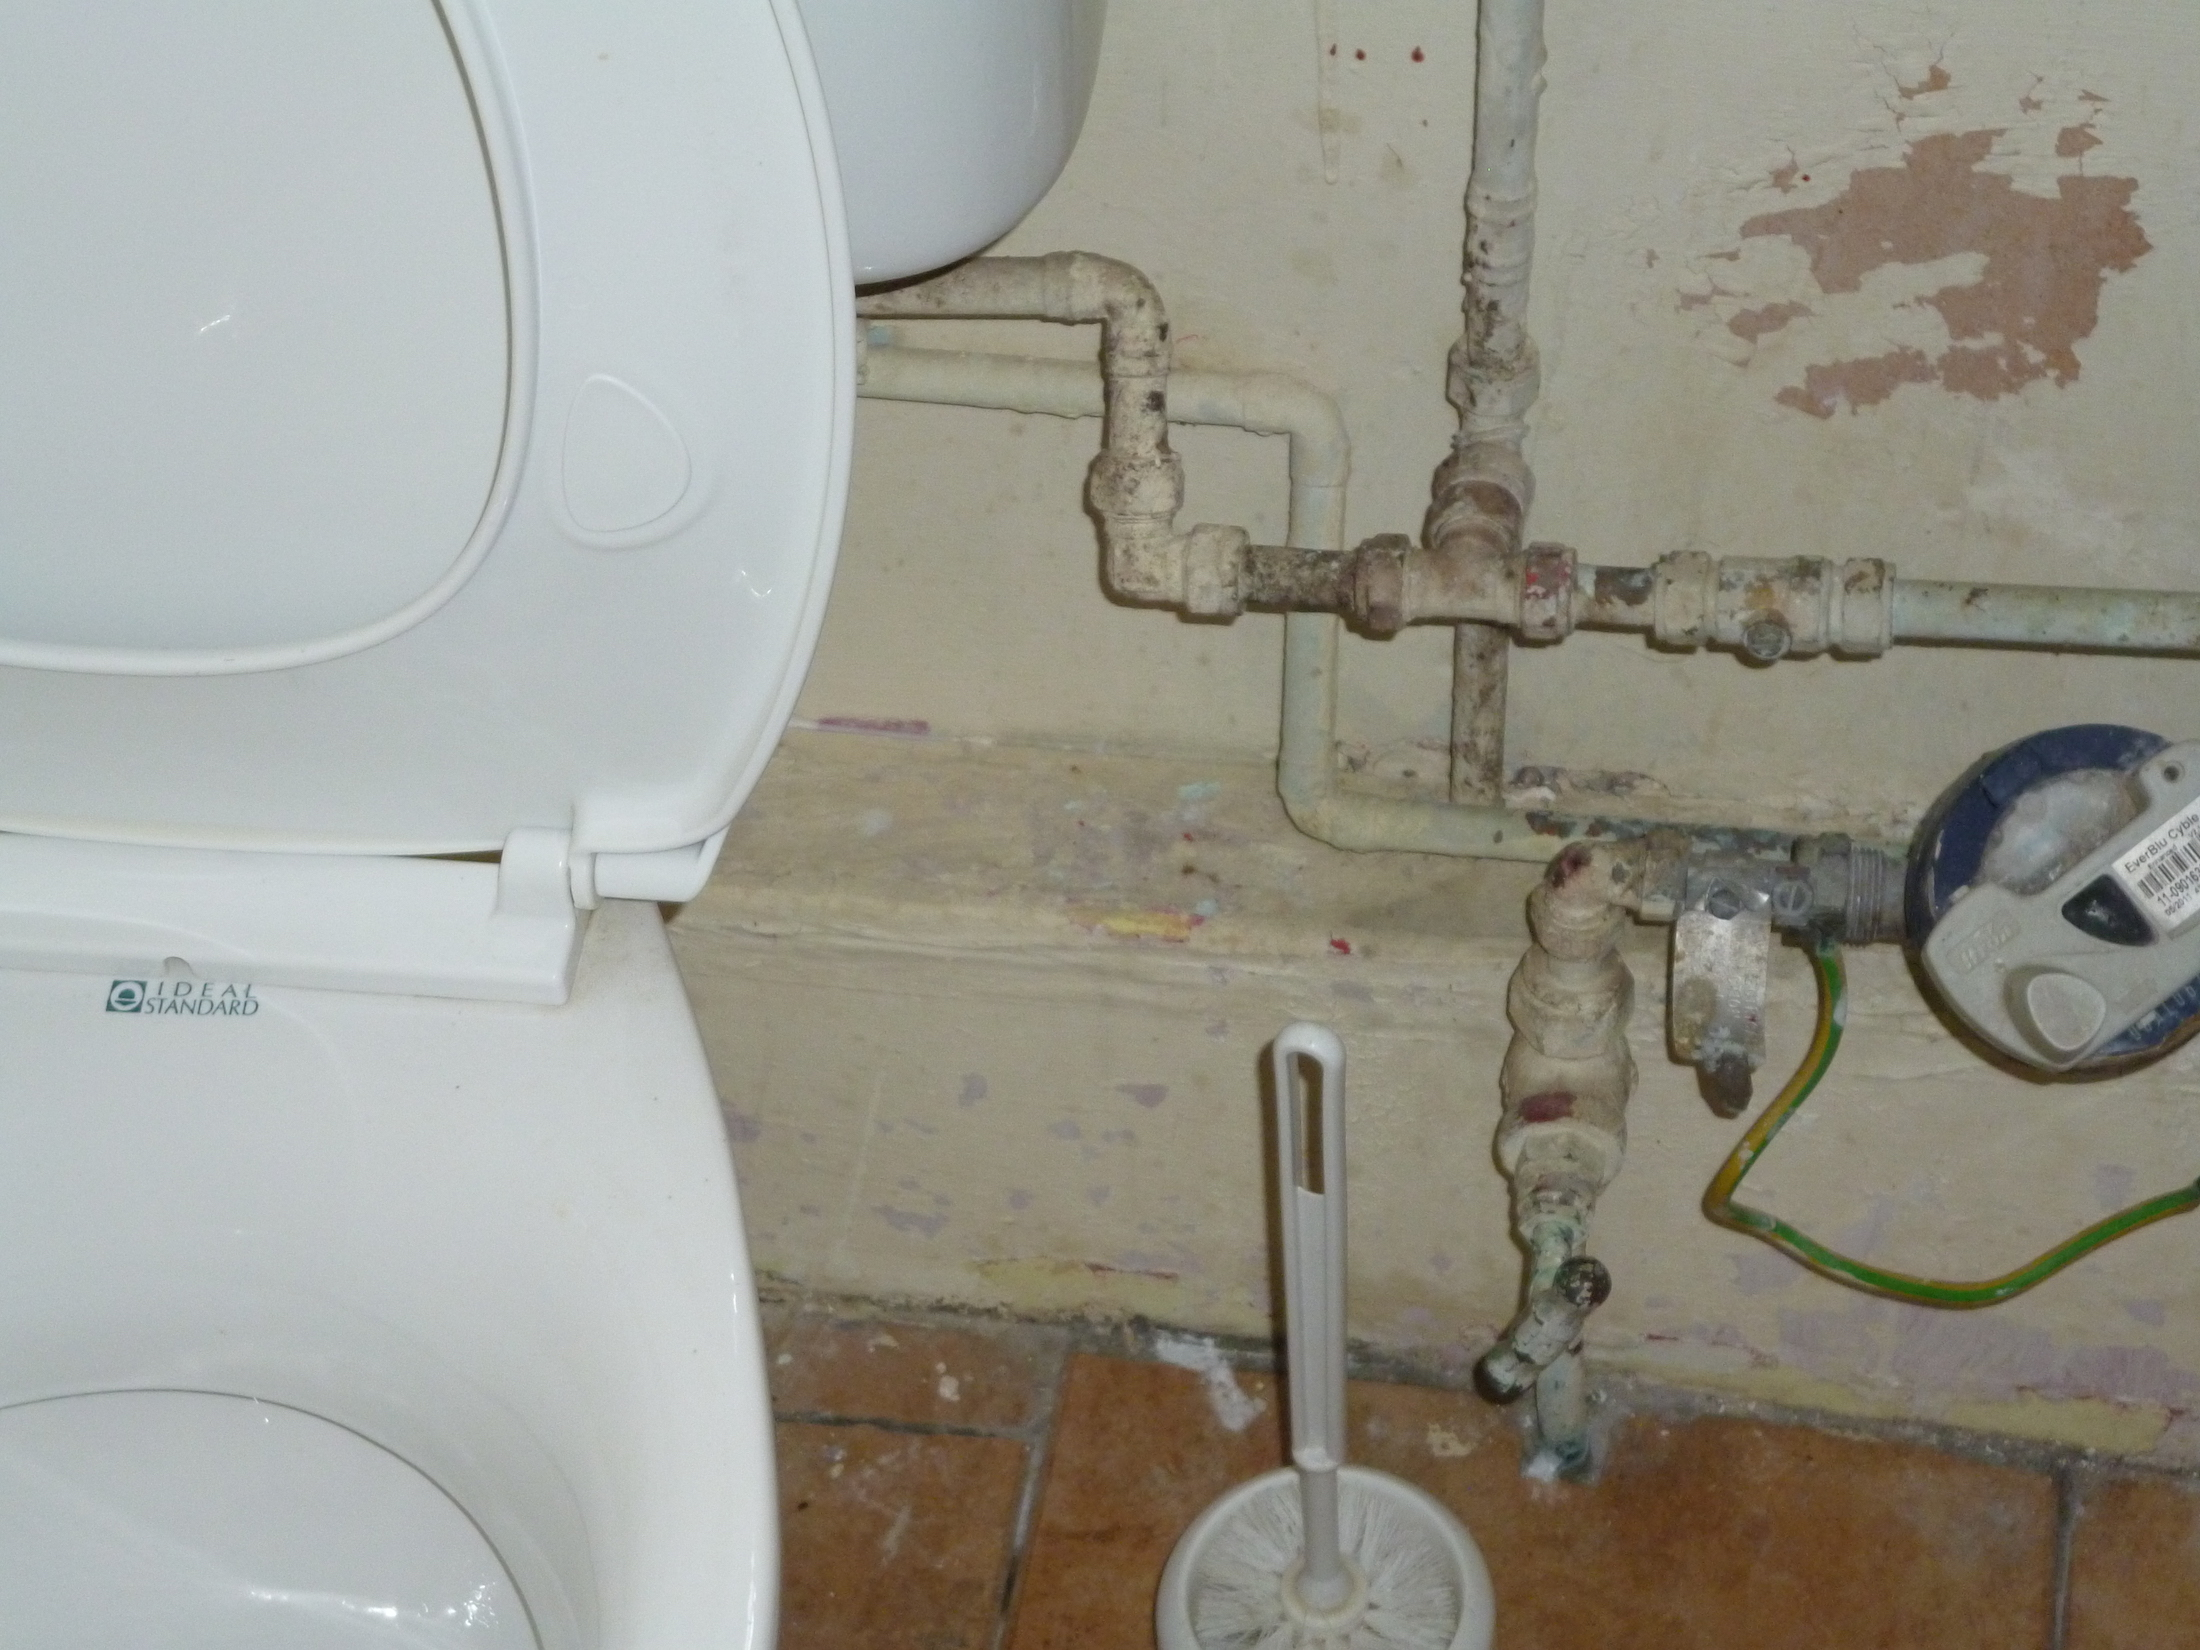 Open pipework in the bathroom© J. Grayson